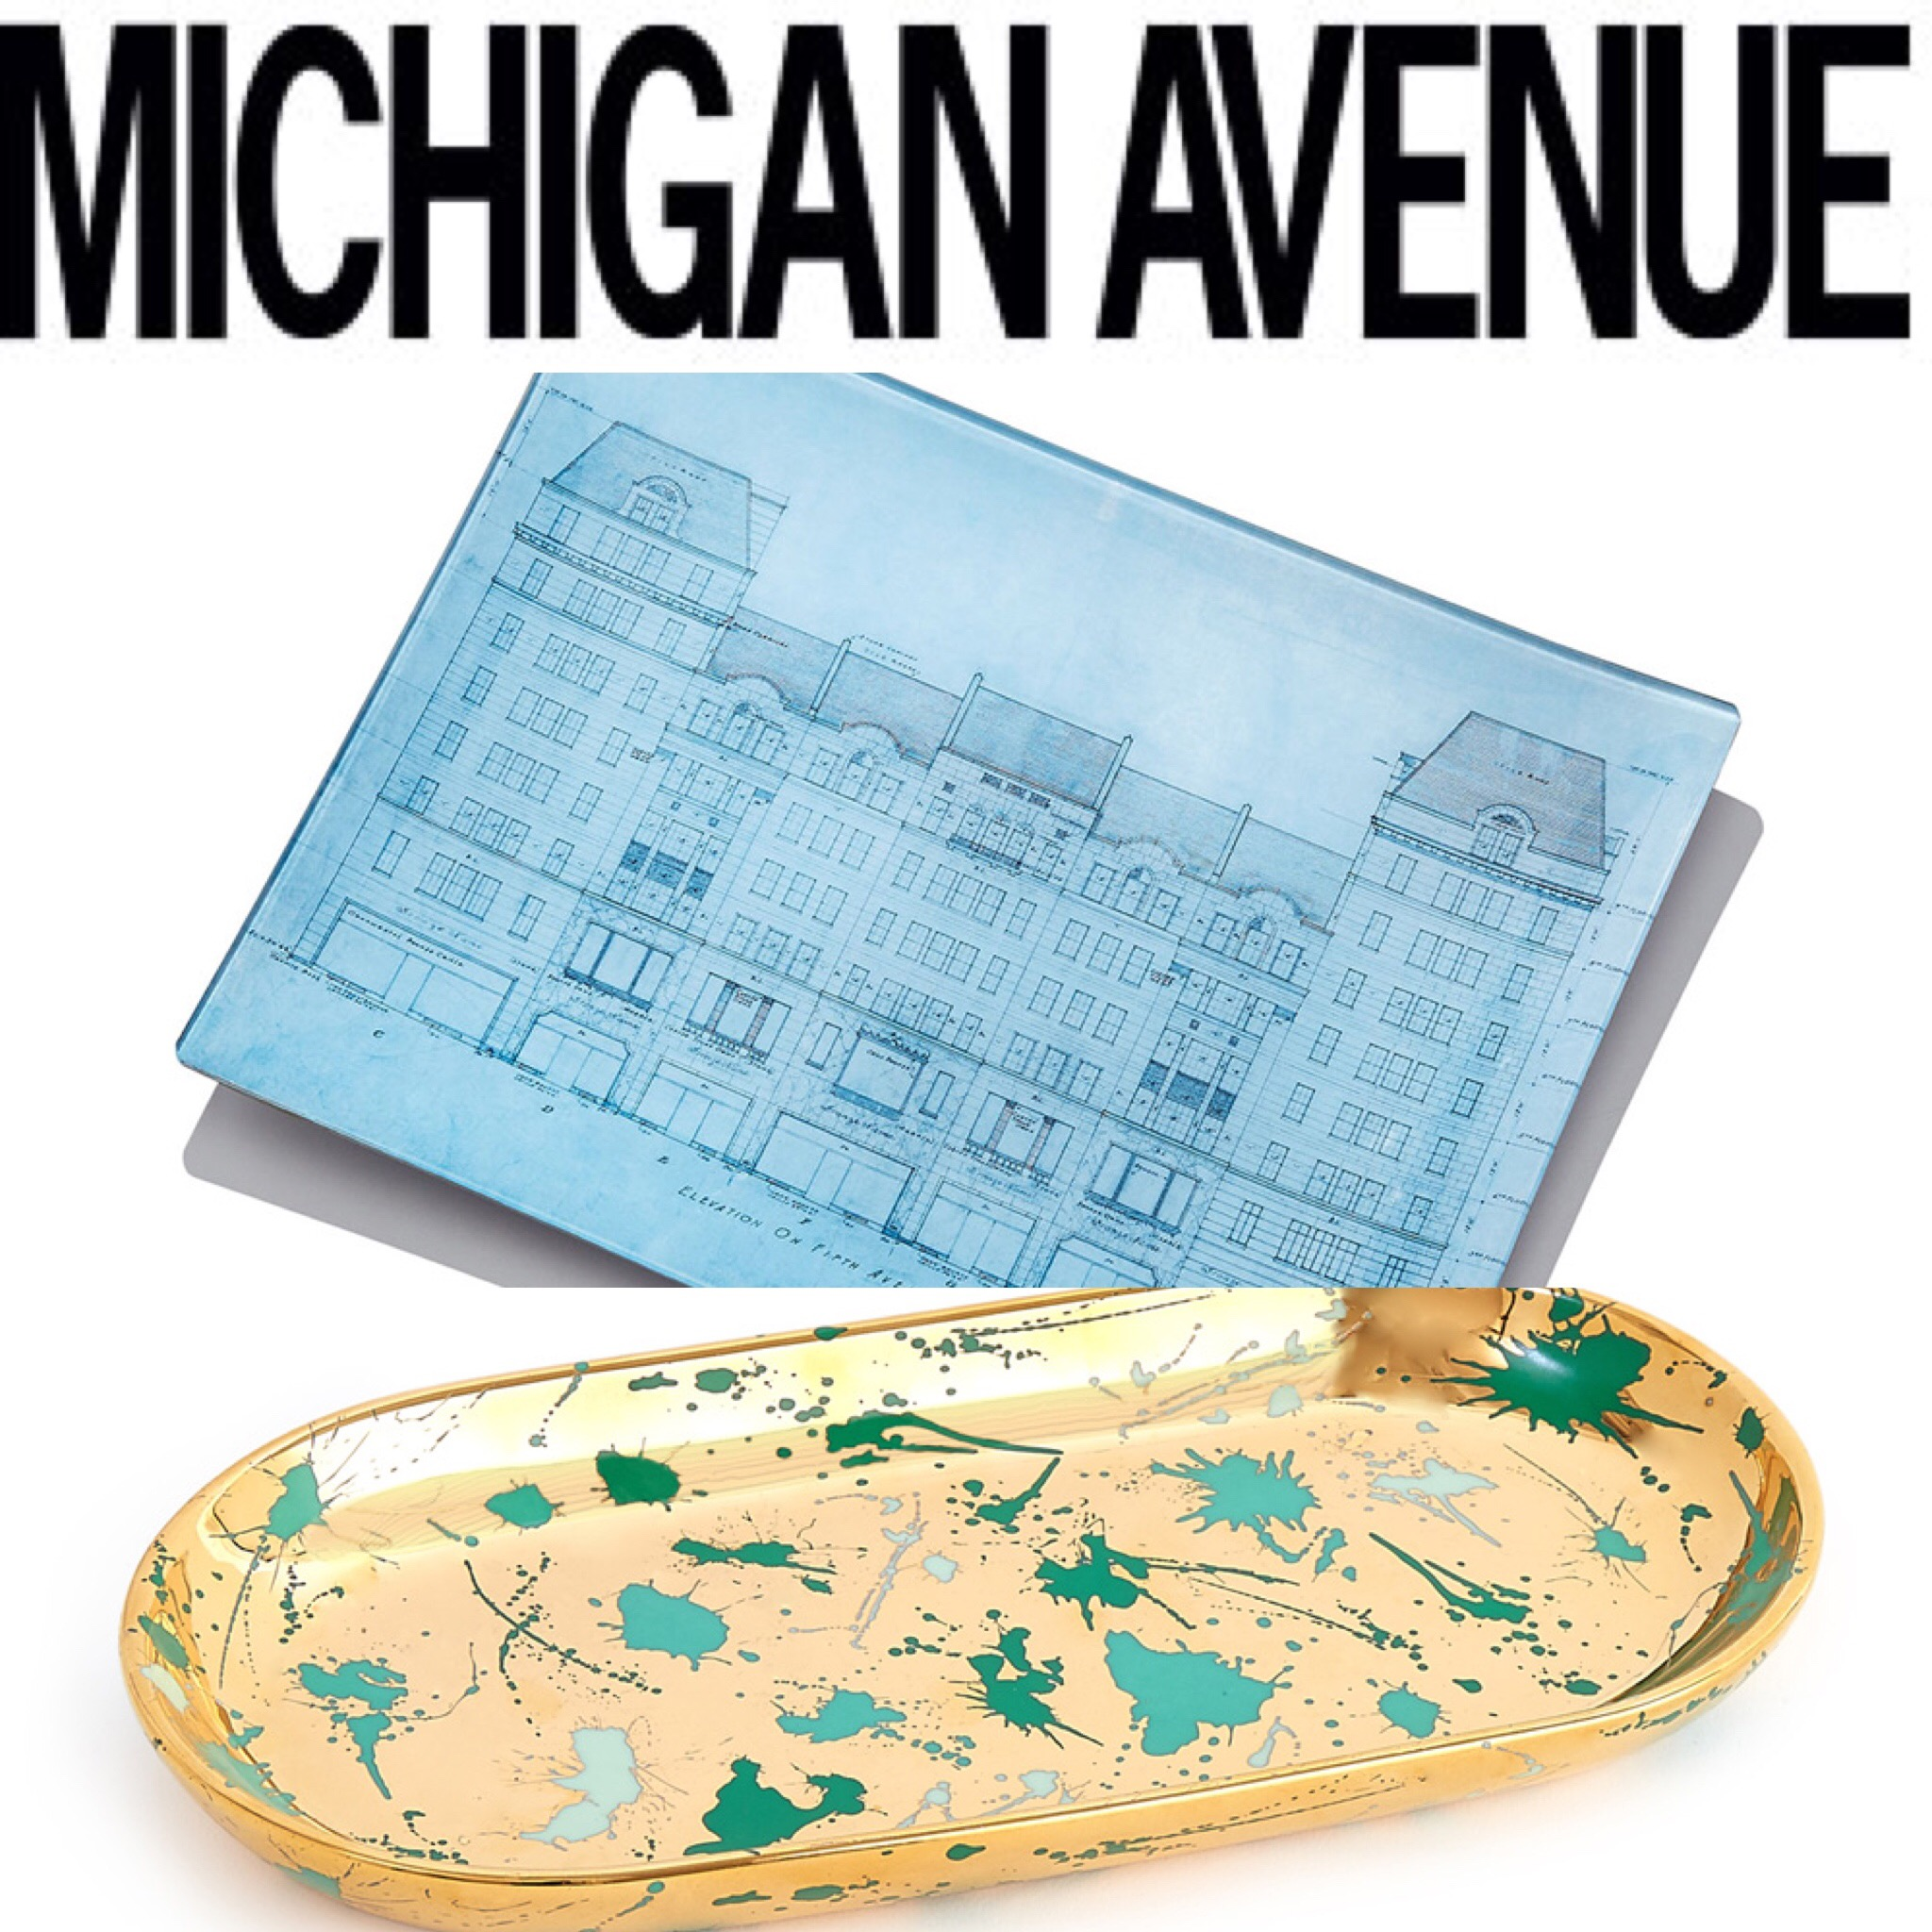 https://michiganavemag.com/chic-catch-all-trays-for-your-home